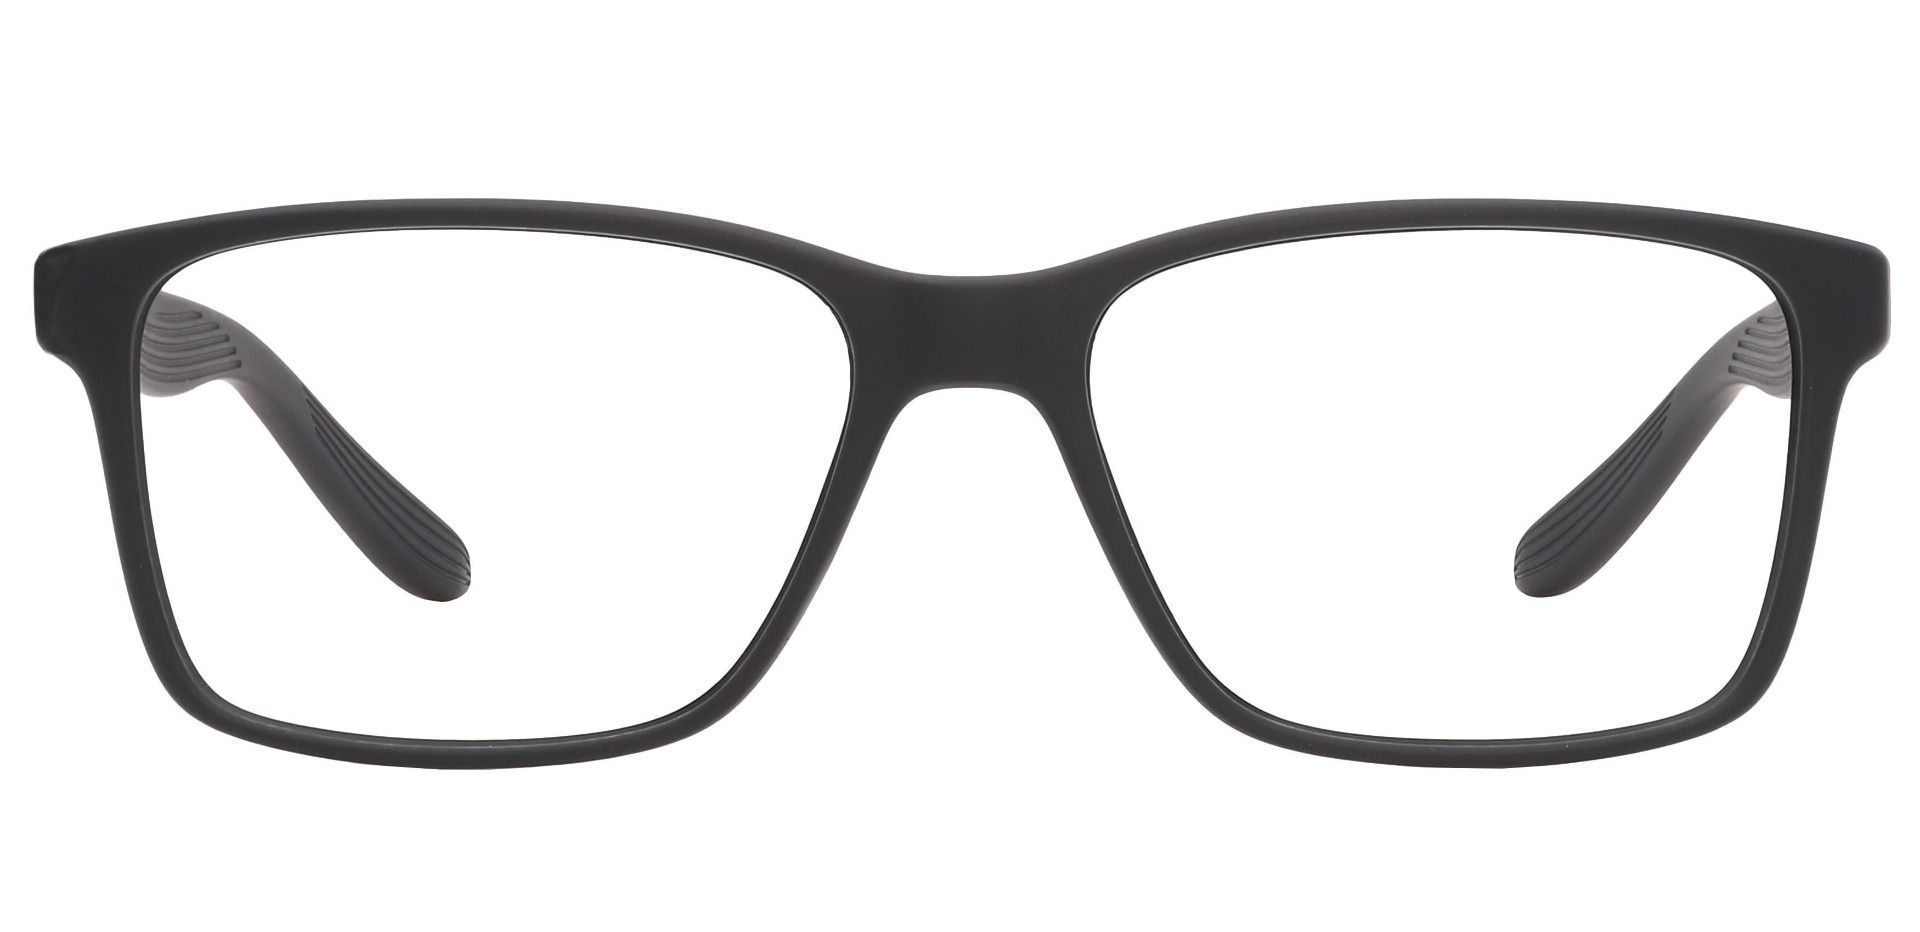 Berlin Rectangle Prescription Glasses -  Matte Black